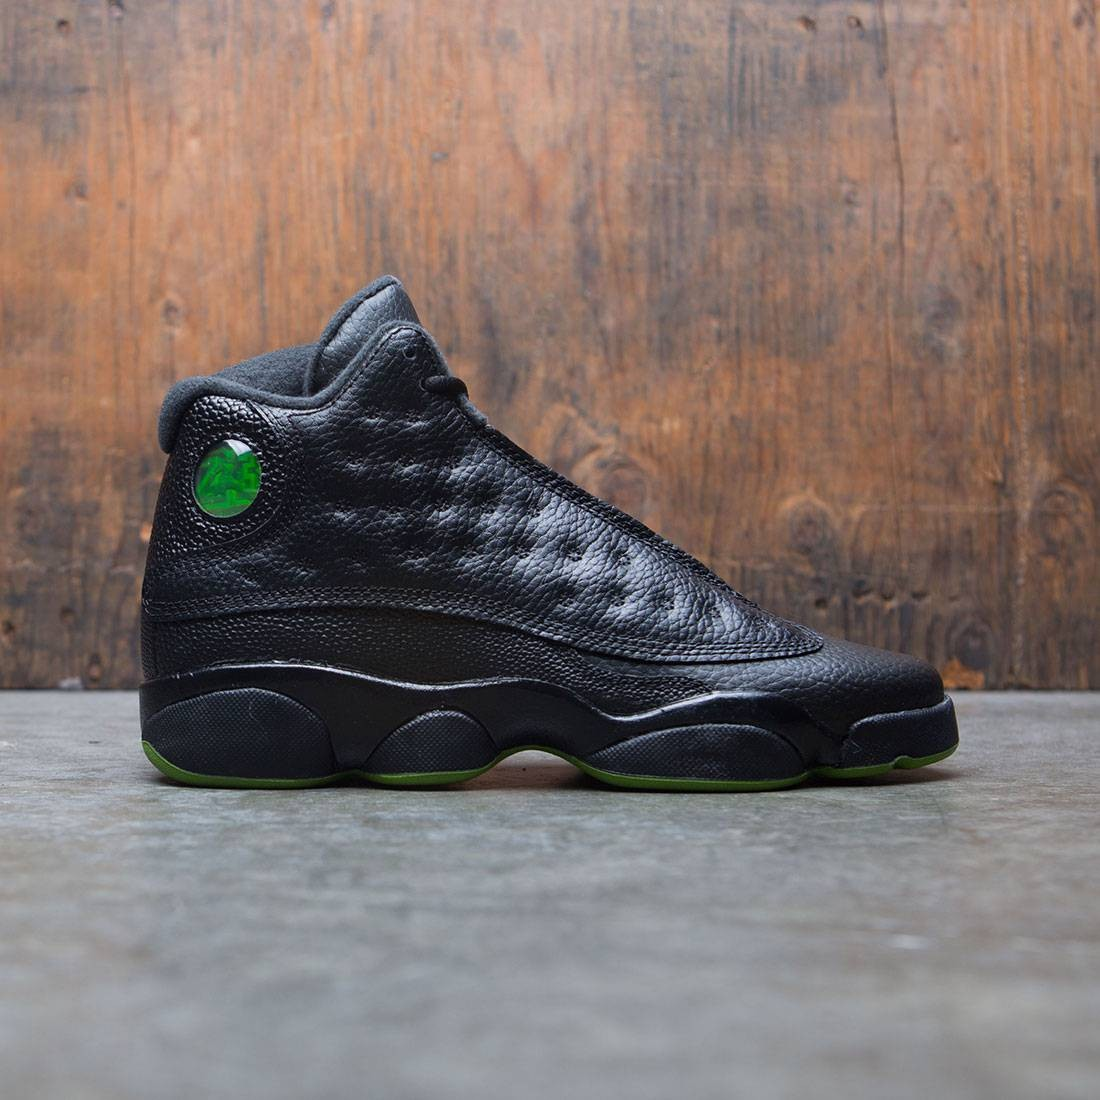 7c69e4ef7e5 jordan big kids air jordan 13 retro gs black altitude green